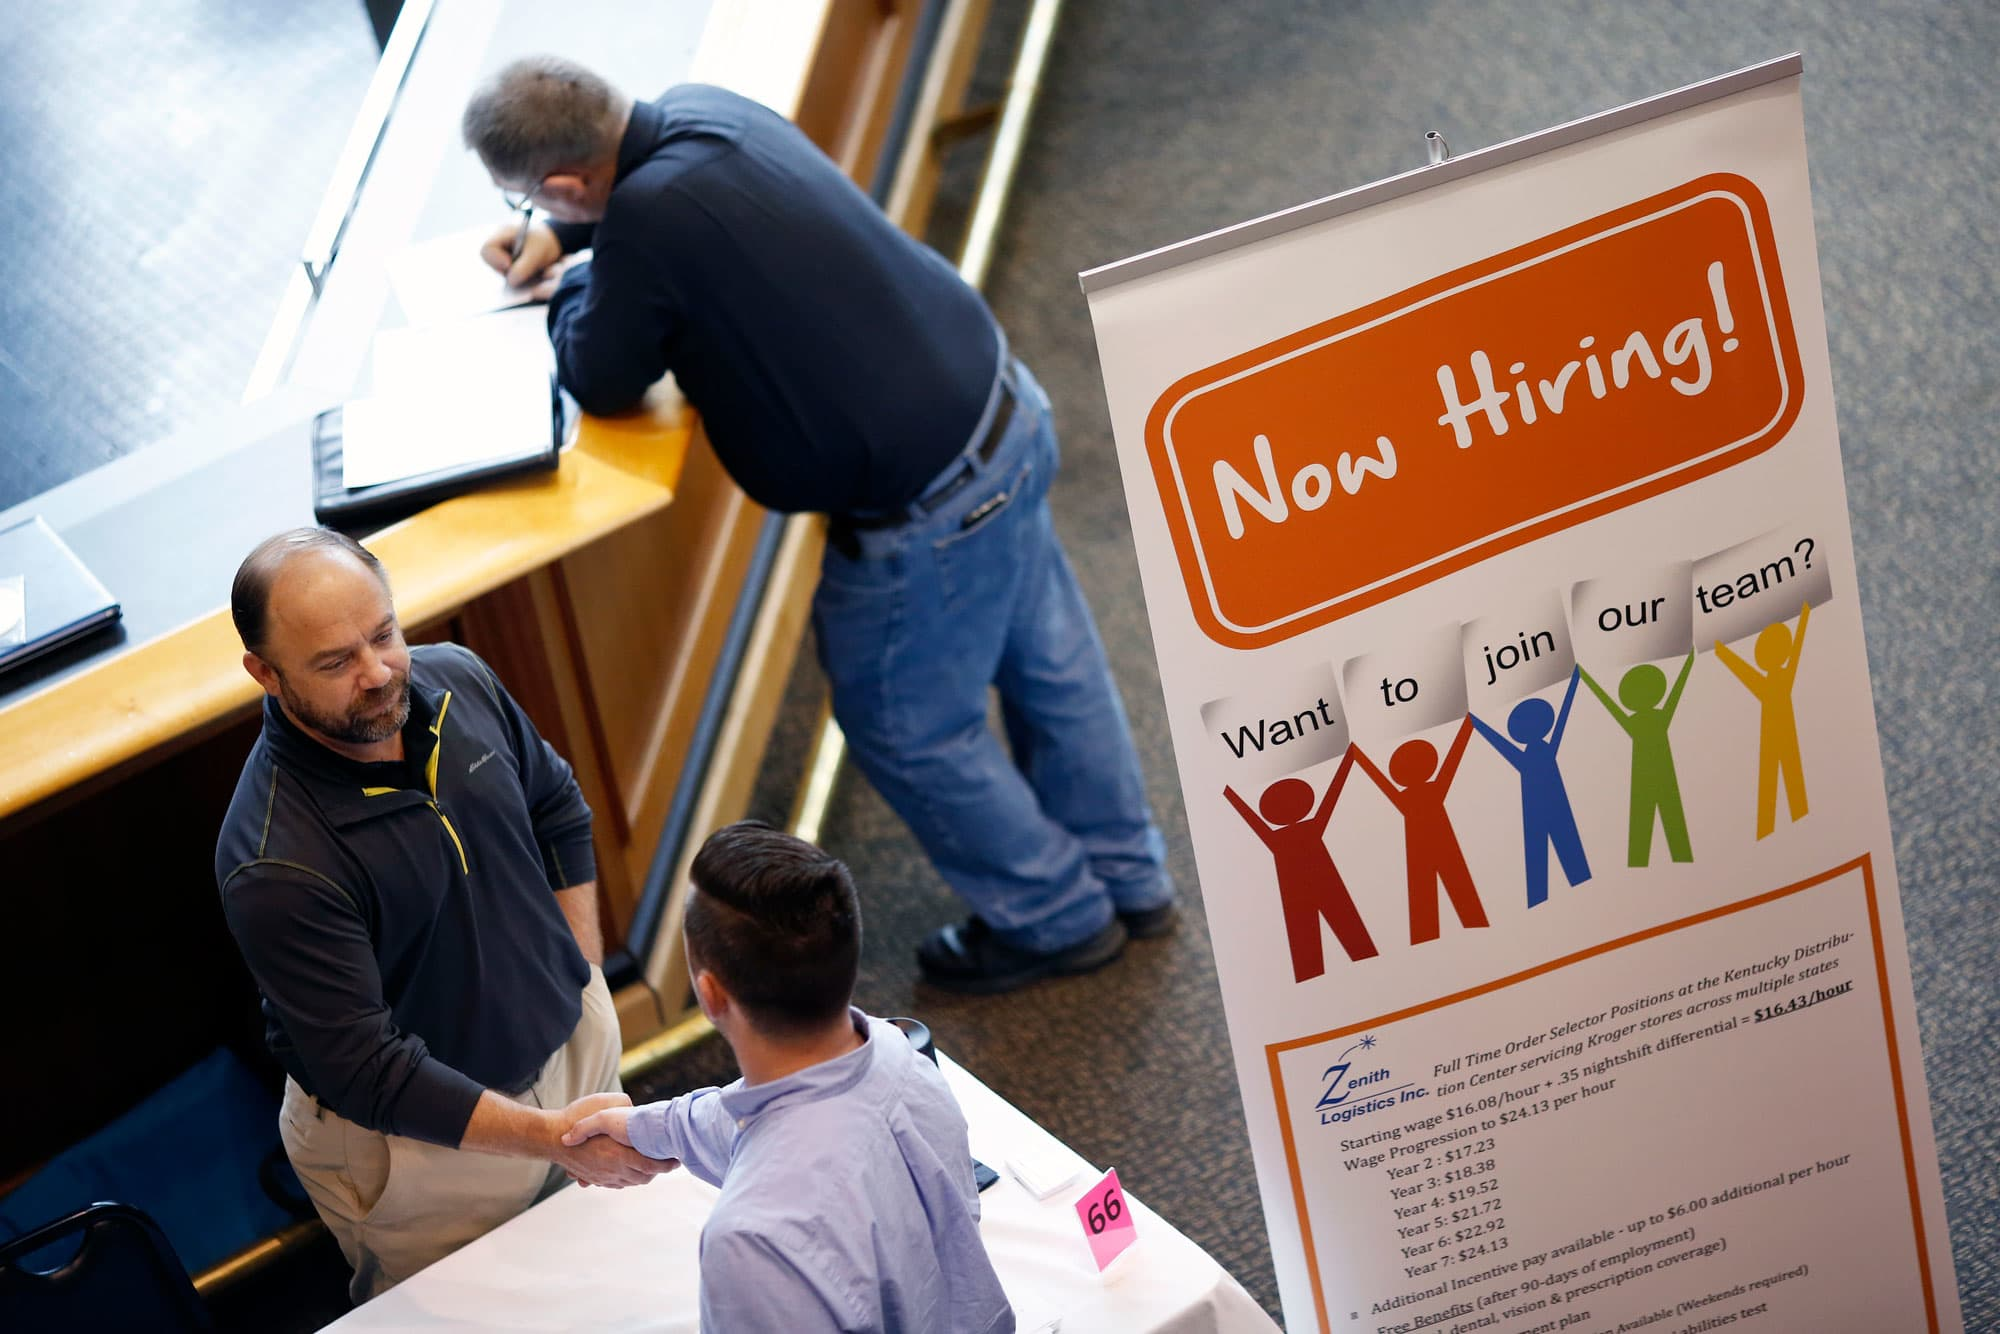 Consumers are the most confident about their job prospects in nearly 2 decades